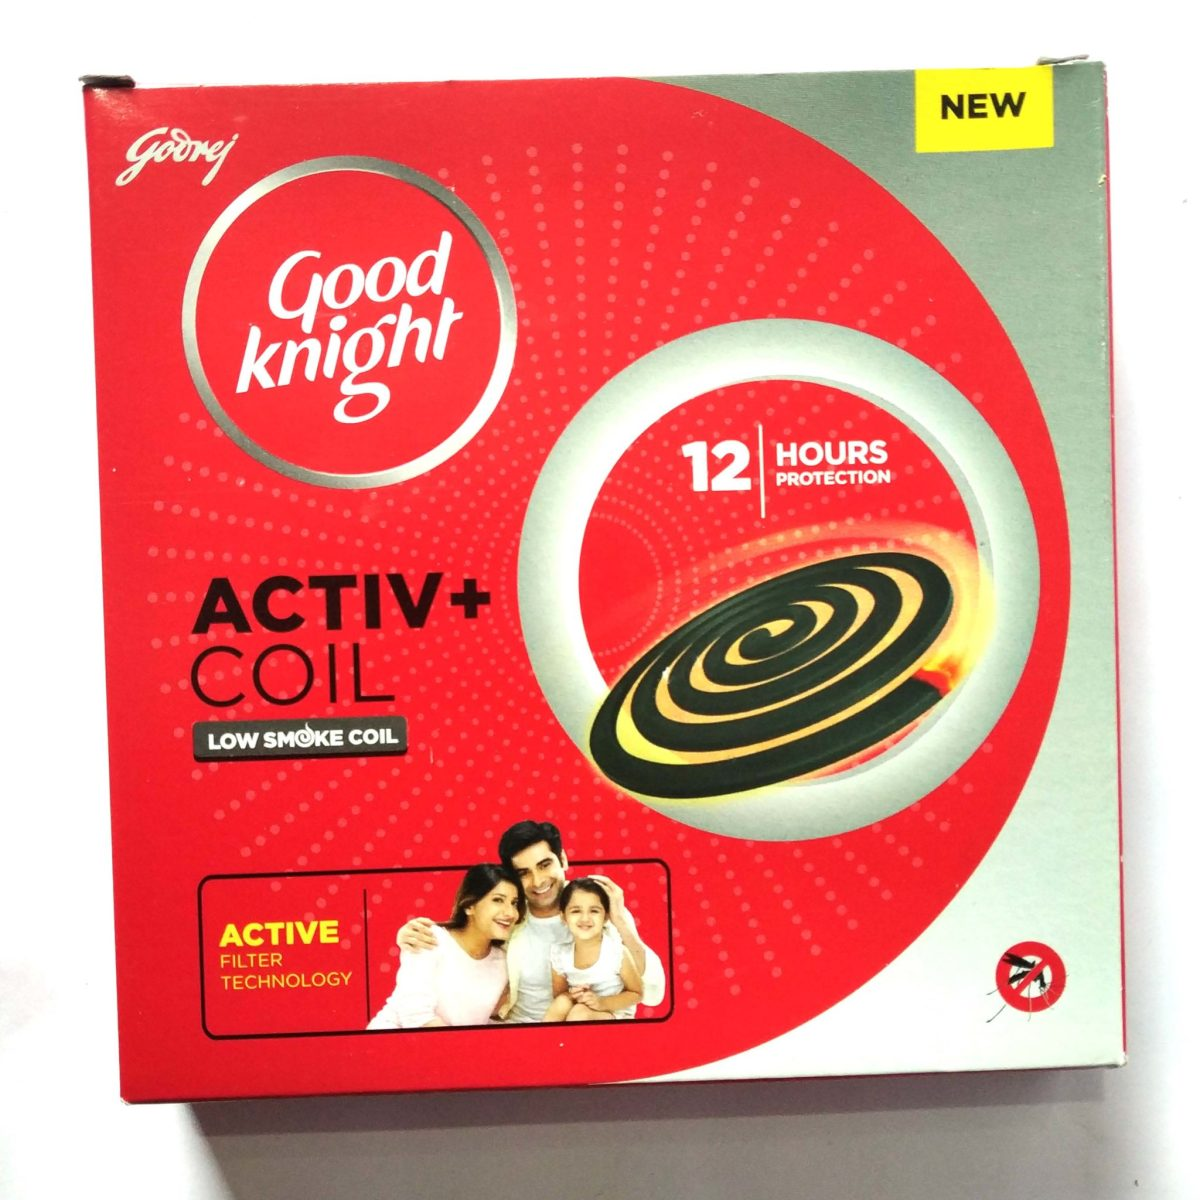 Good Night Active+ Coil